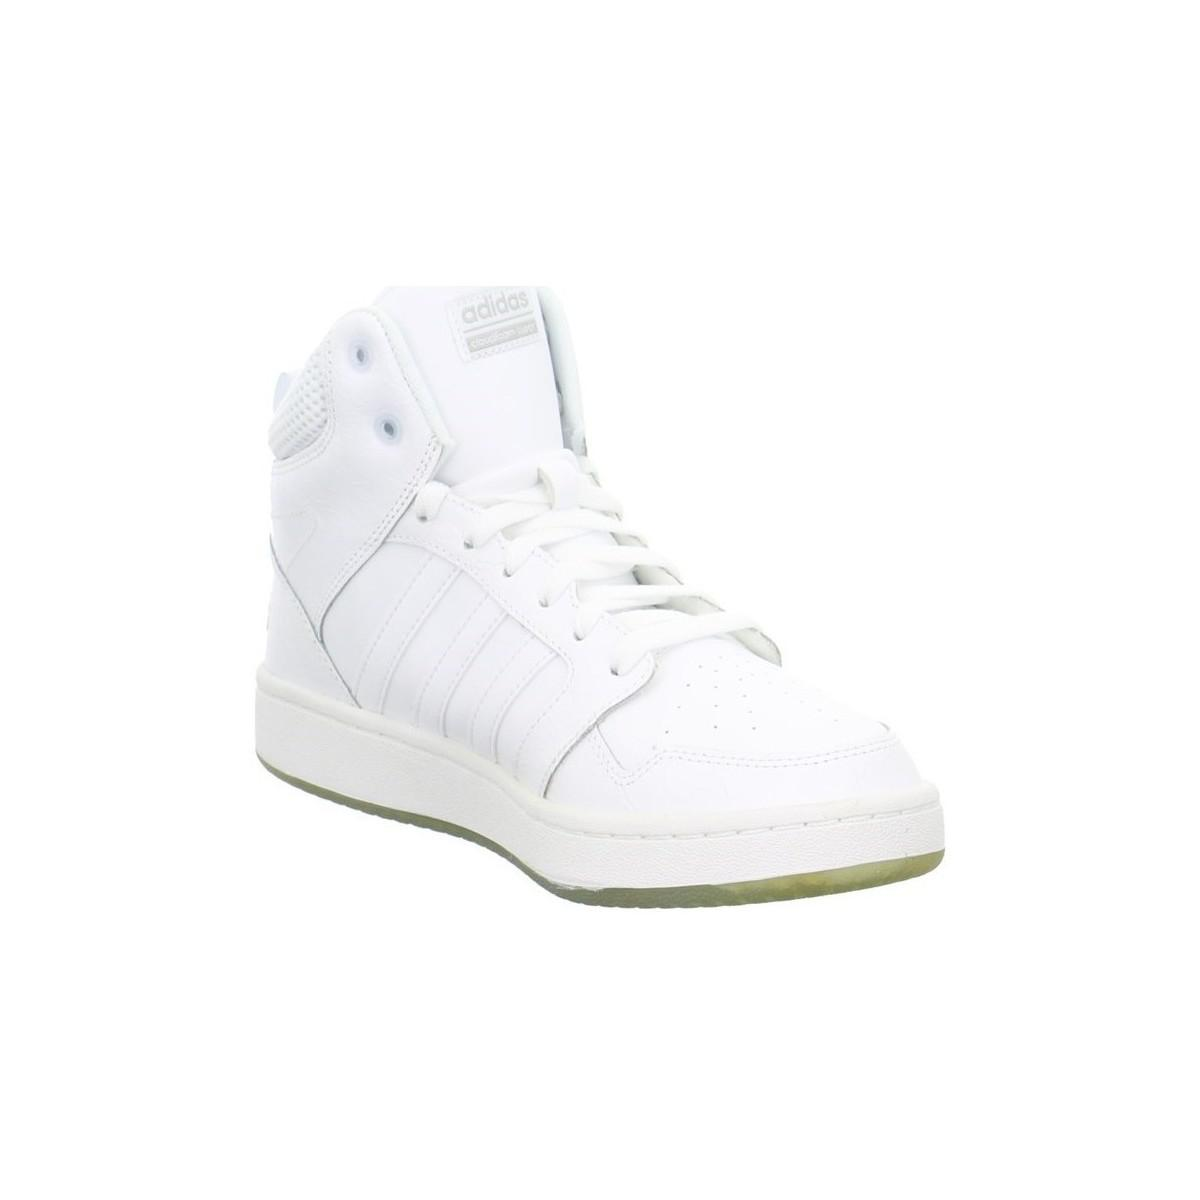 official photos 99a52 728a5 adidas Cloudfoam Super Hoops Mid Sneaker Mens Shoes (high-to